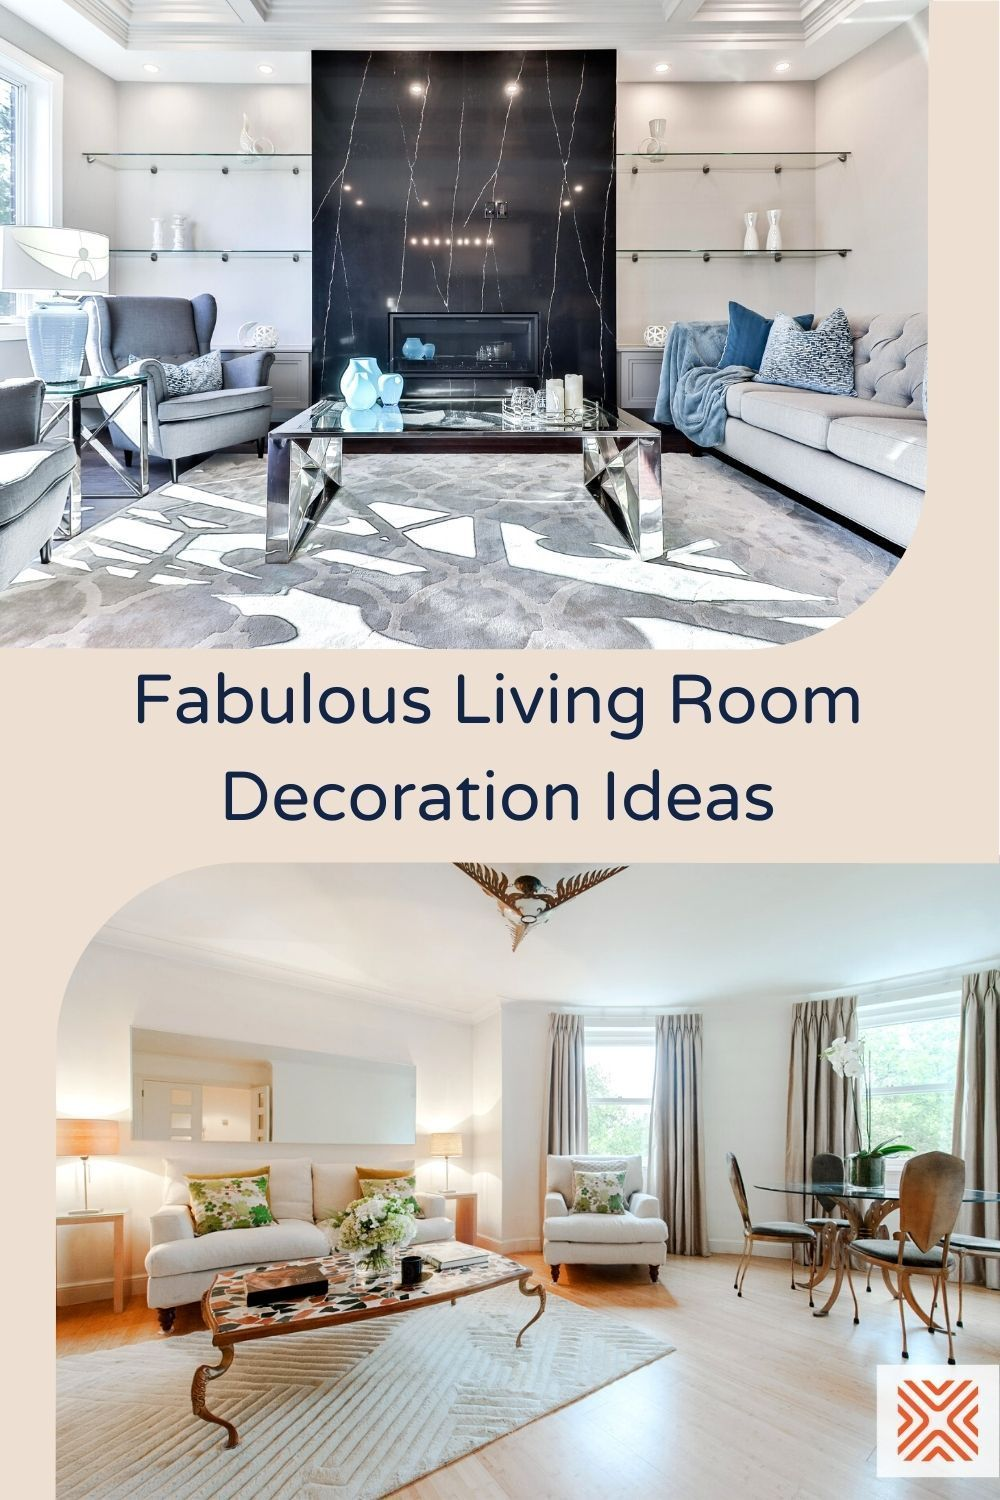 Before you begin decorating a living room, you must first take note of the living room layout, the wall paint colors, and the ways to accessorize it. If you're having trouble getting started, we have a full decor guide on how to decorate a living room here.